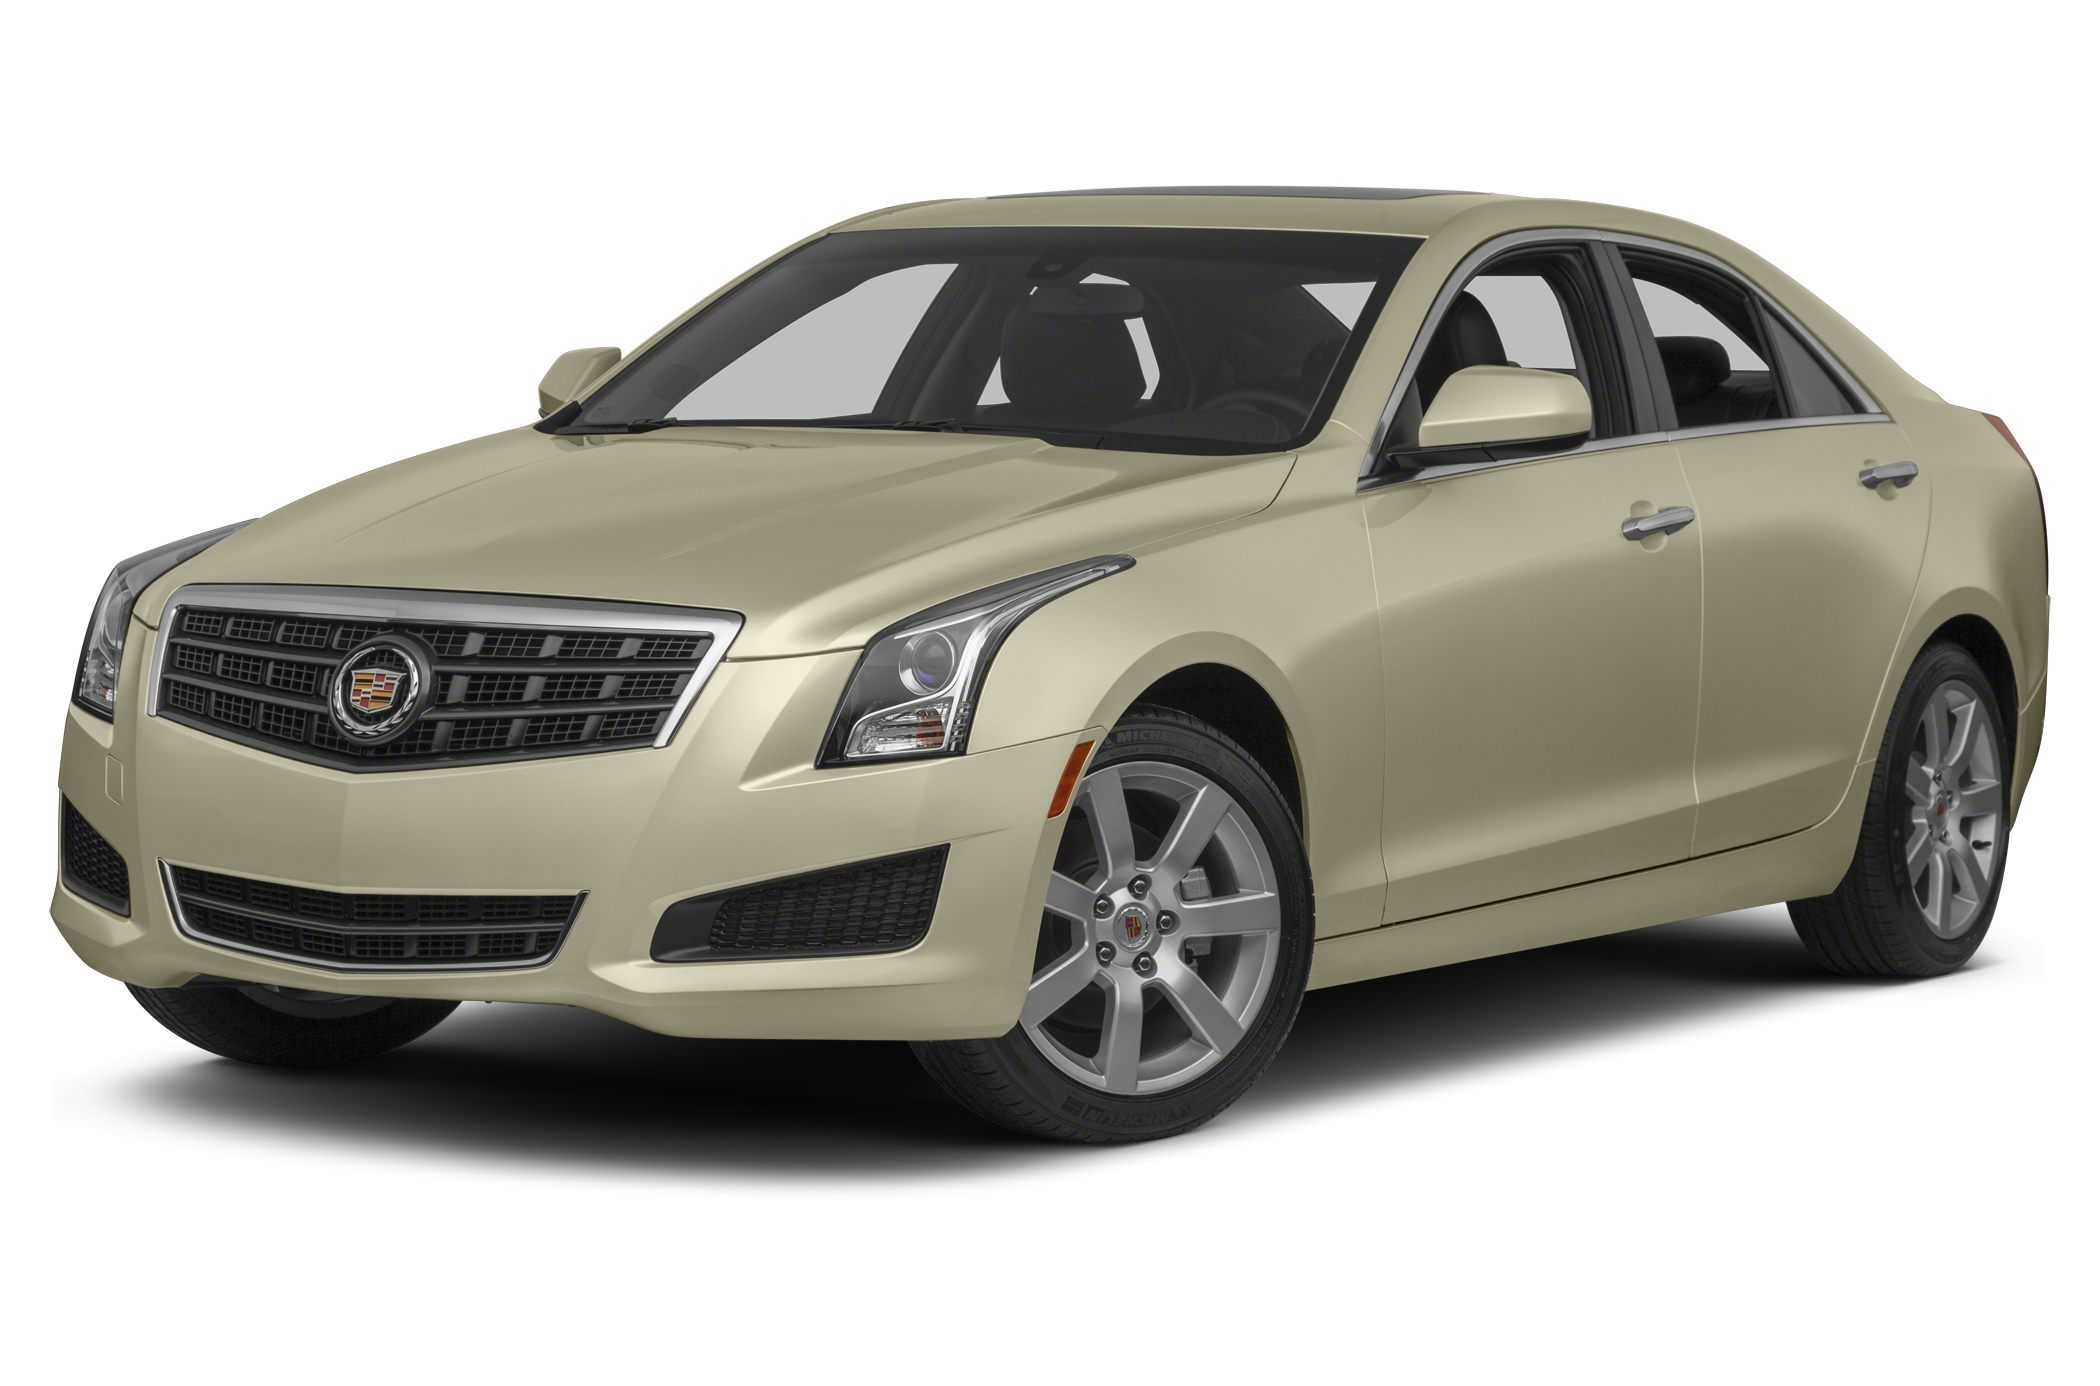 2013 Cadillac ATS 2.0L Turbo Premium Sedan for sale in Wautoma for $31,495 with 25,594 miles.